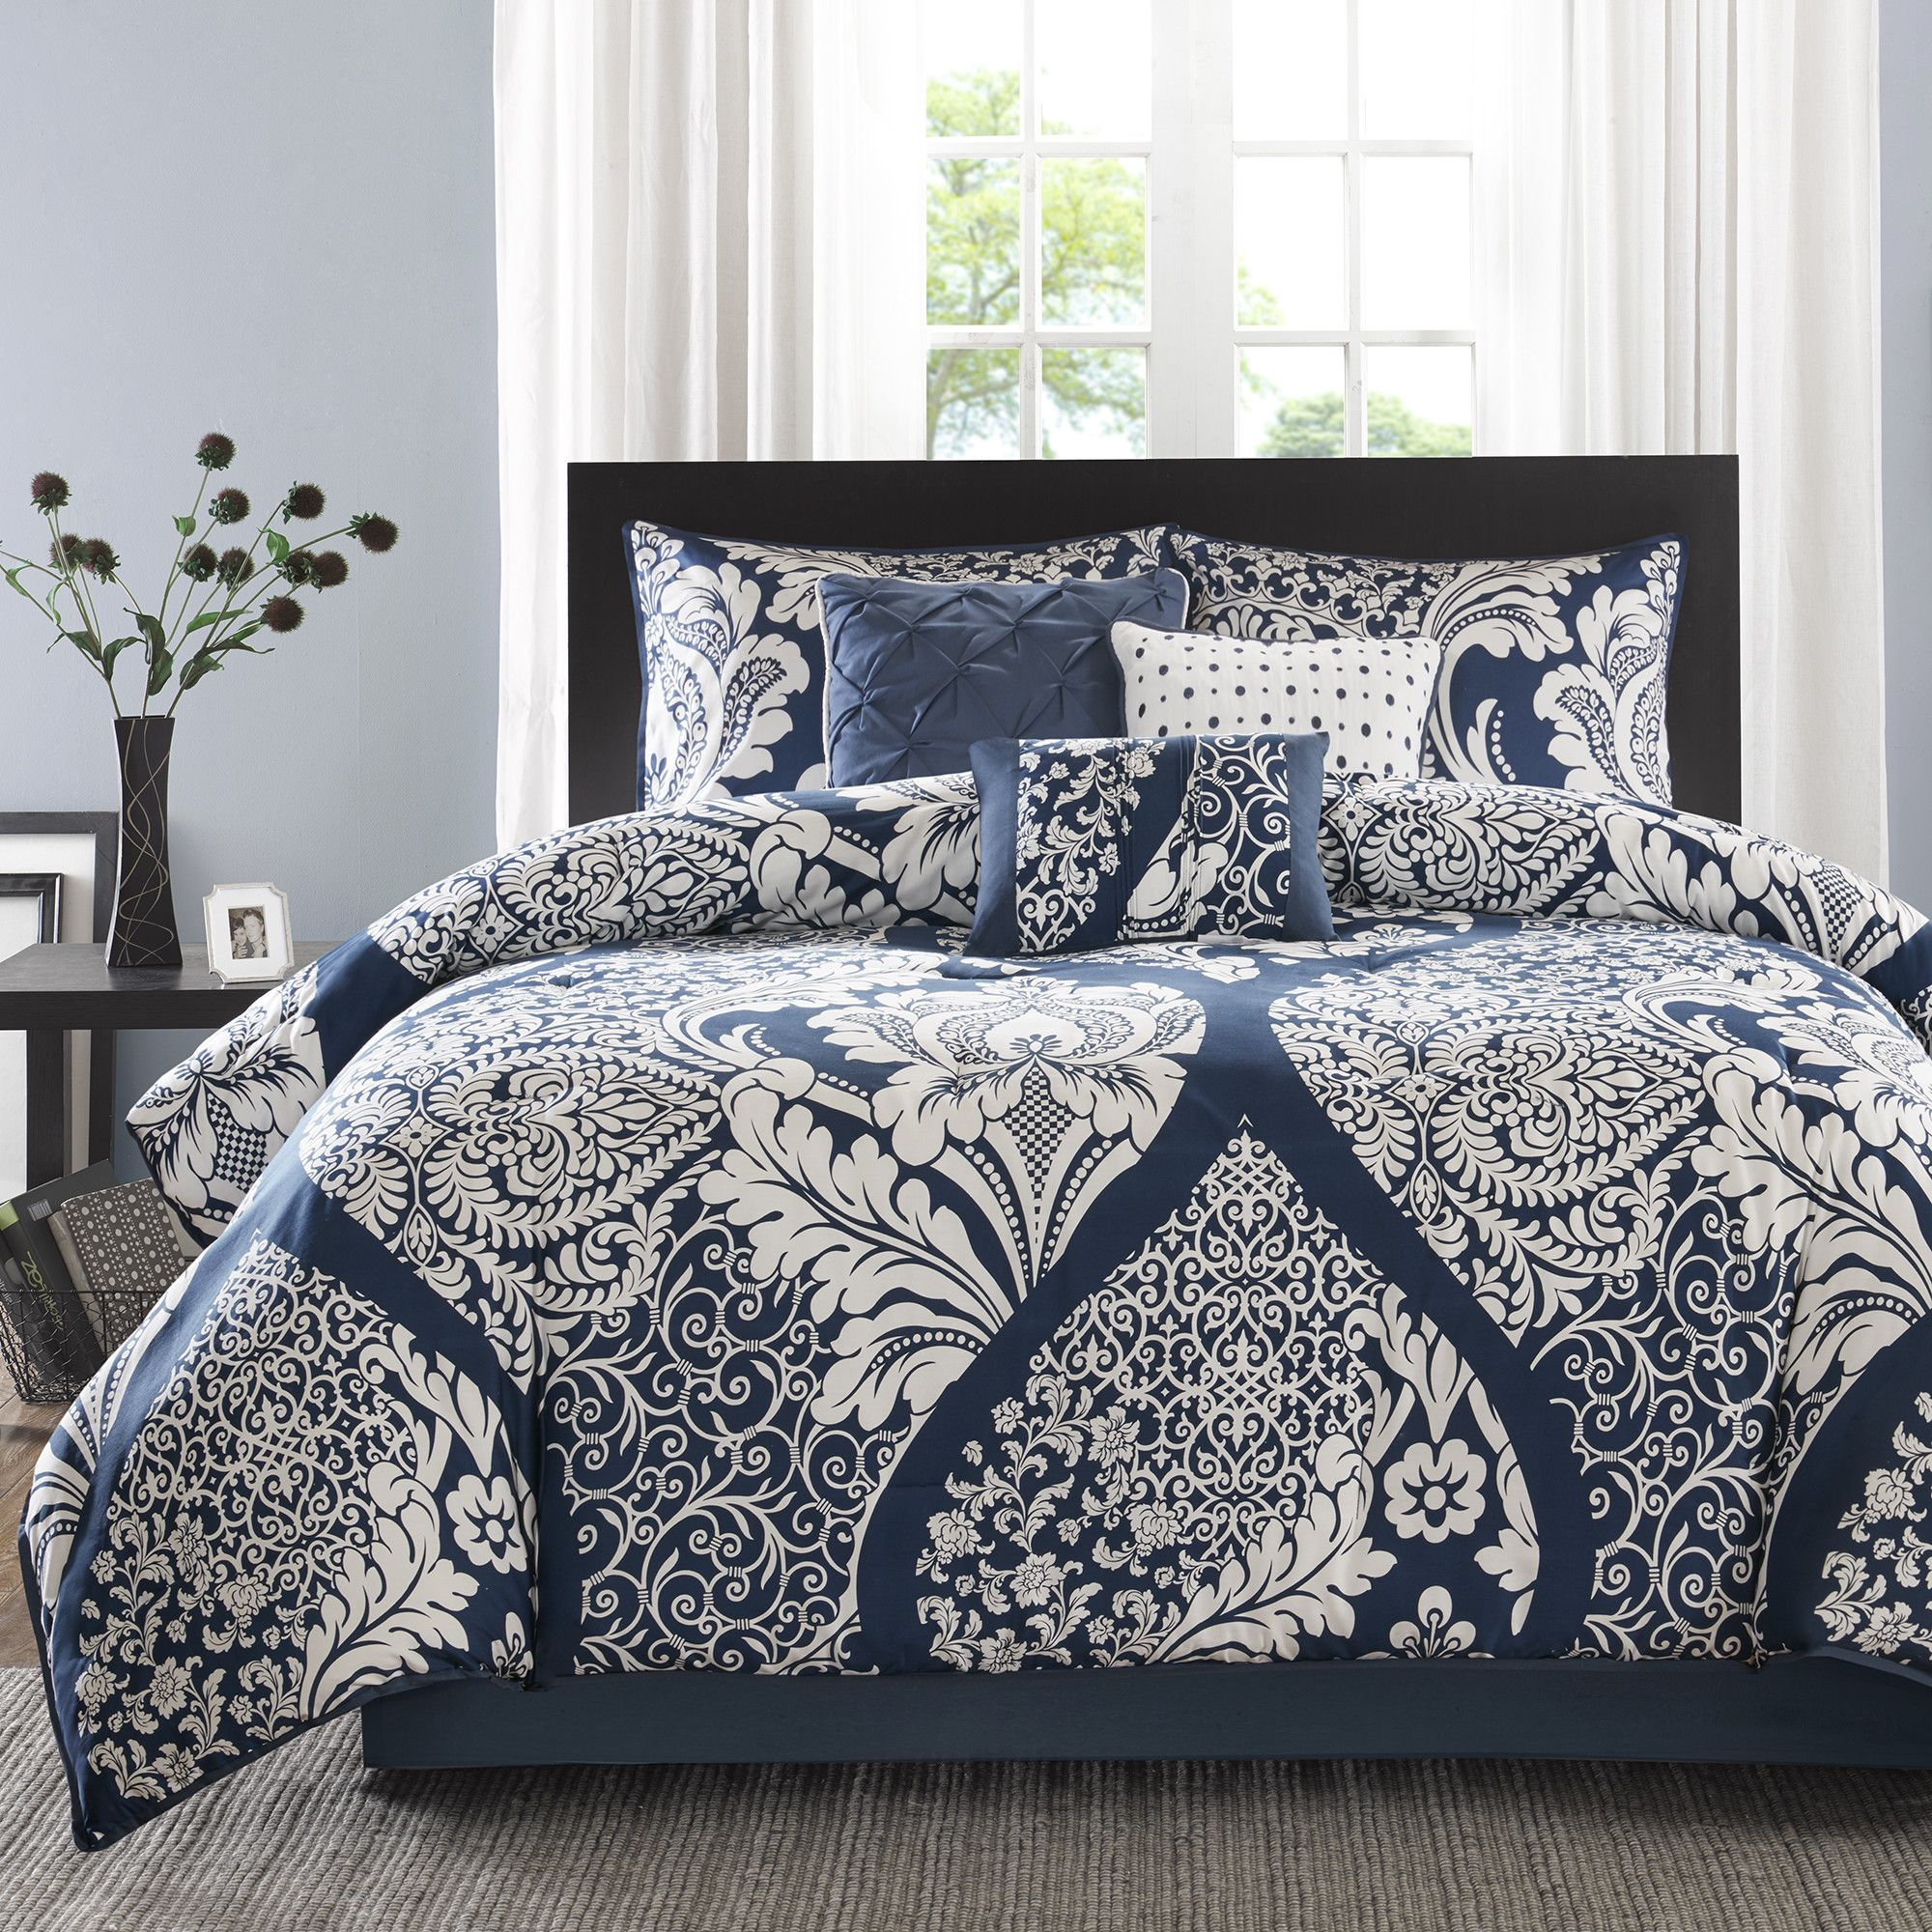 king class perfect dillardsamusing decor comforter decoration bedspreads oversized your california alluring country touch bedding bedspread hd sets idea of coverlet home cal and amusing with quilt as